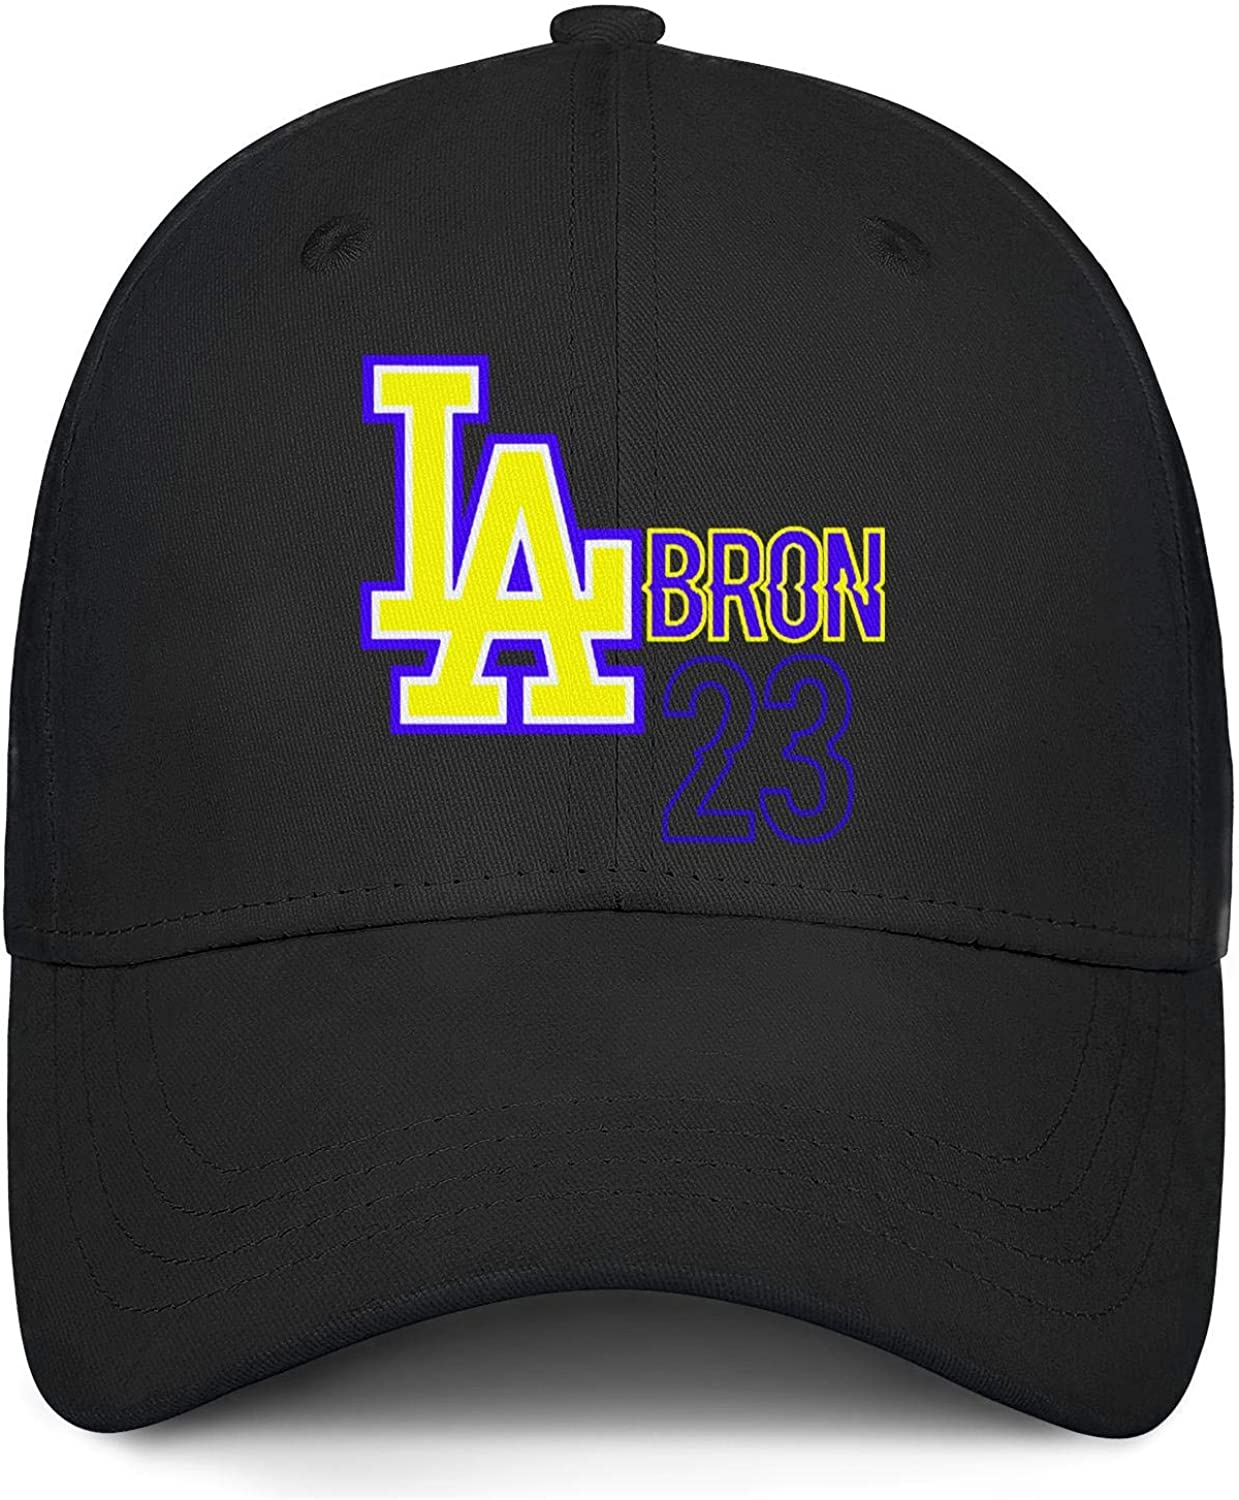 Unisex Polo Style Baseball Cap LAbron-23-yellow/_King California Fitted Embroidered All Cotton Trucker Cap